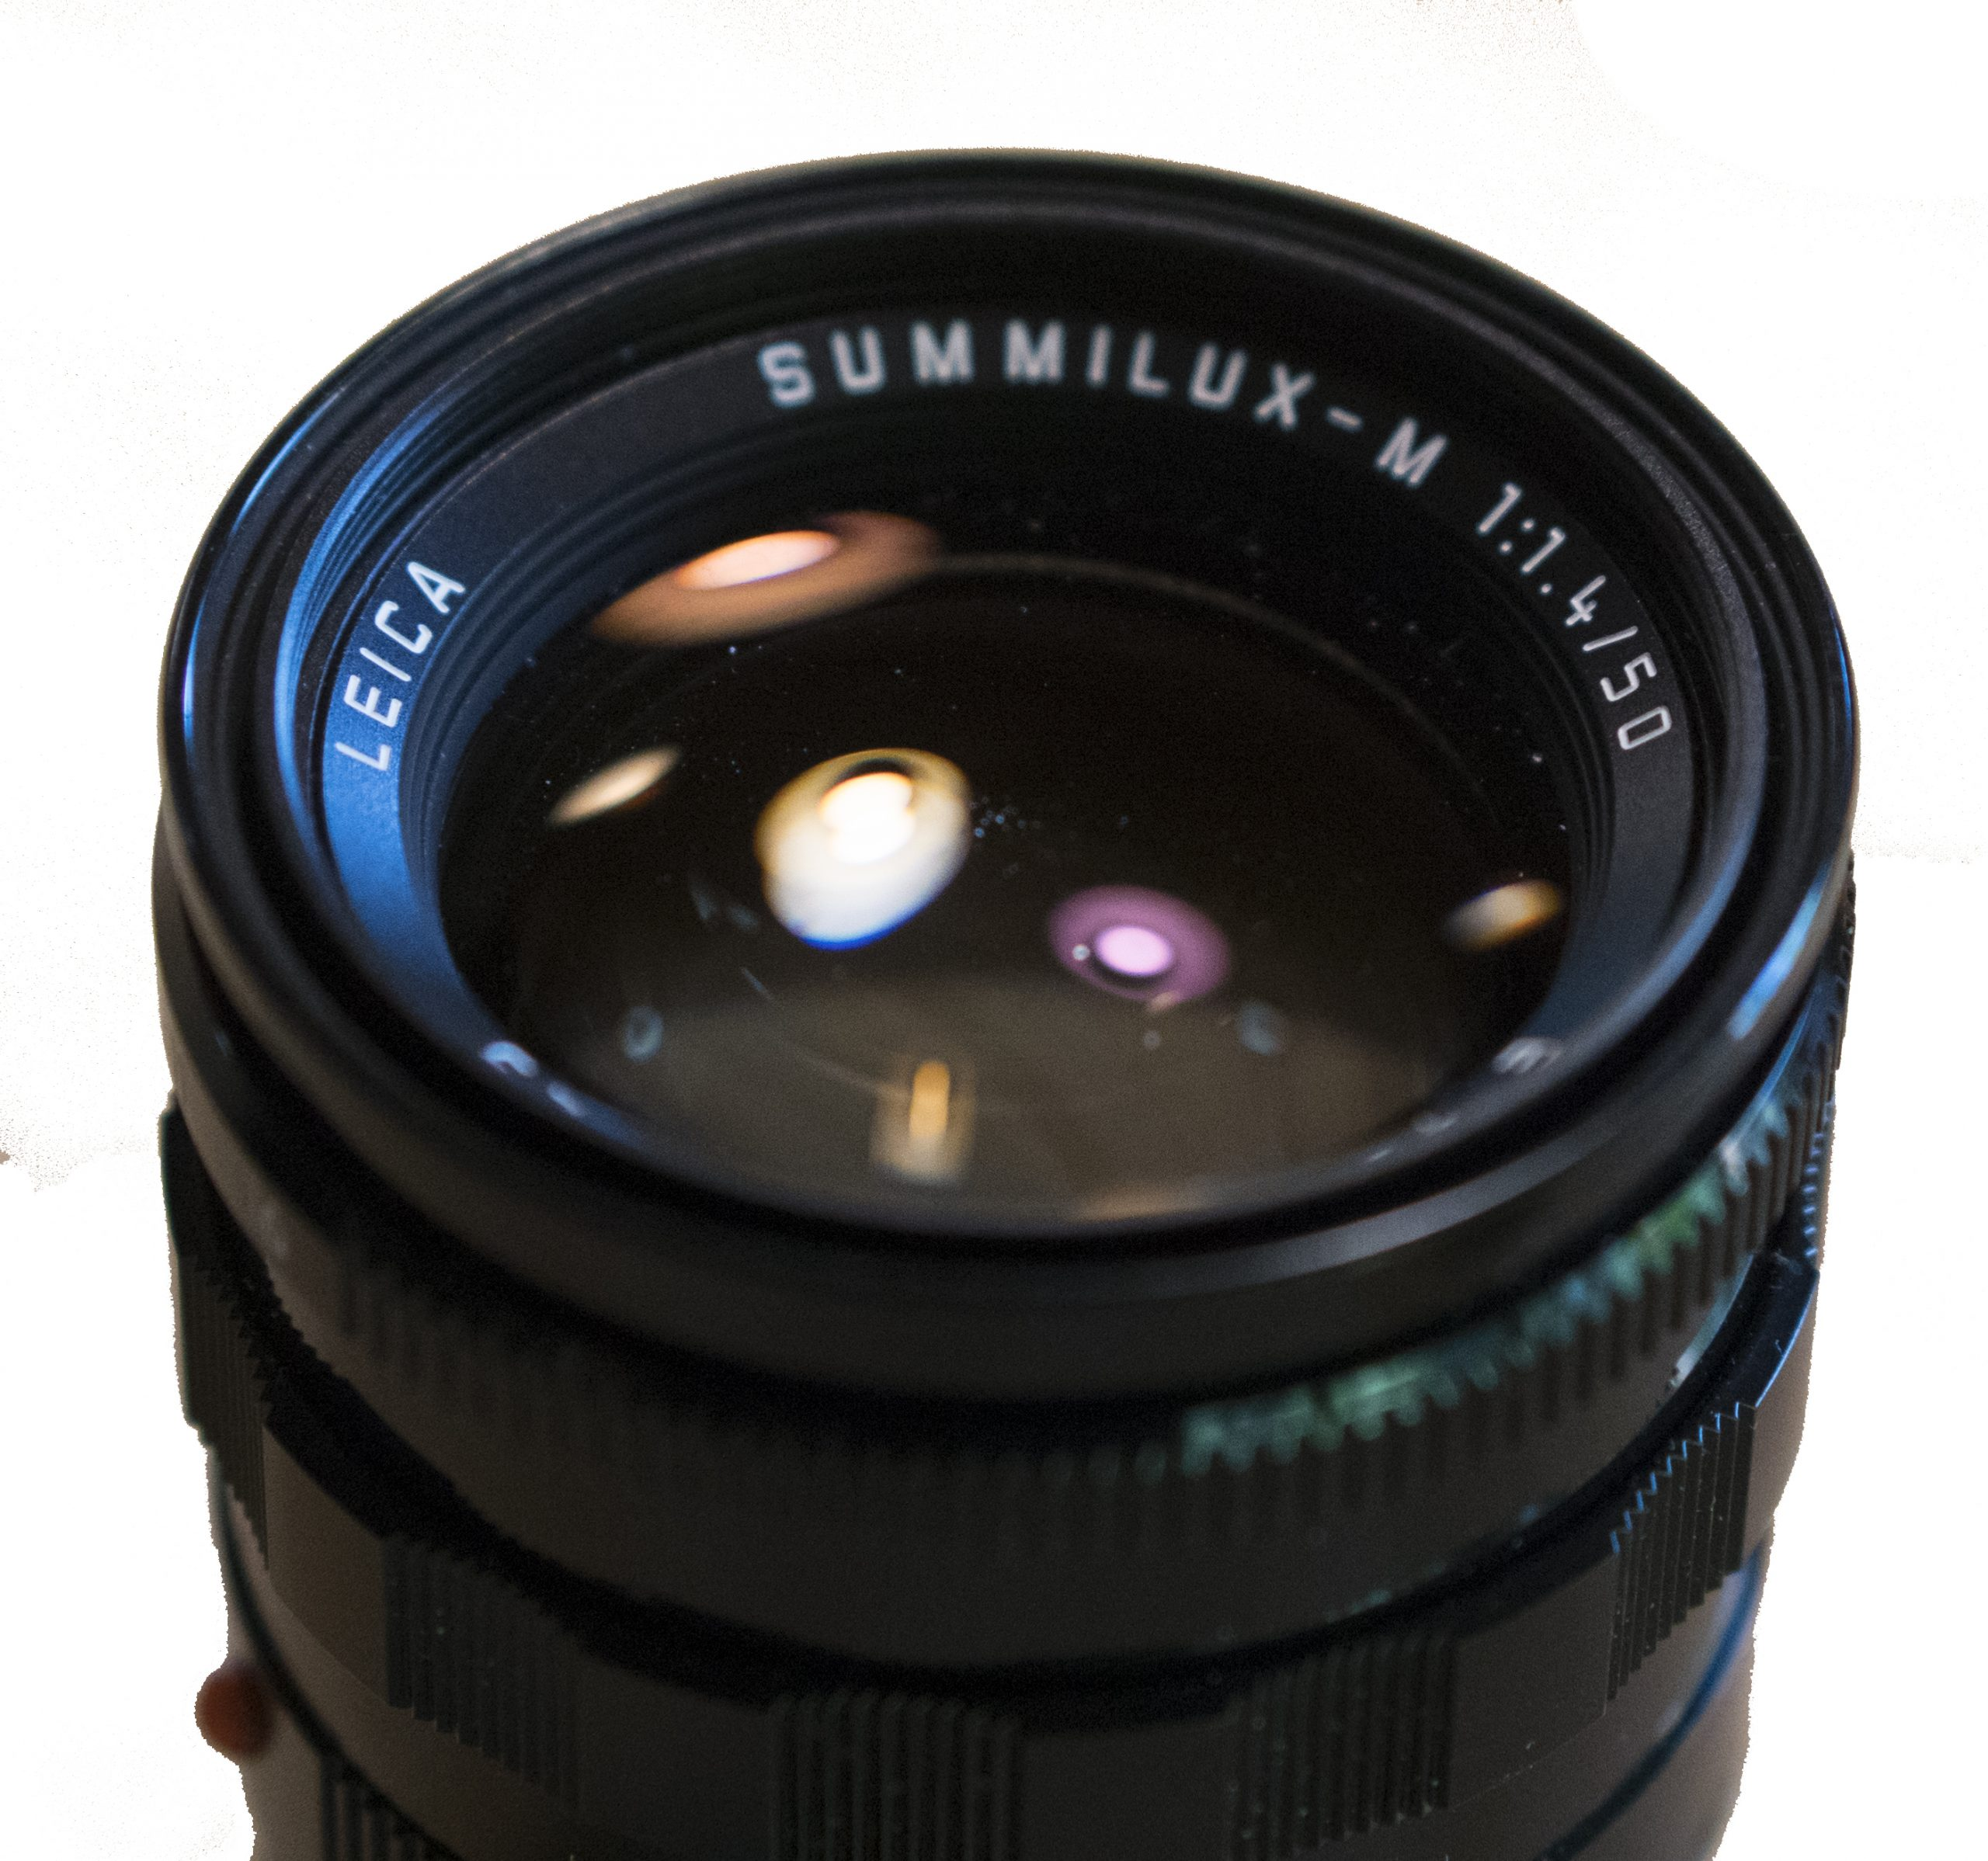 Leica Summilux 50mm f1.4 lens Review - Leica Review - Oz Yilmaz